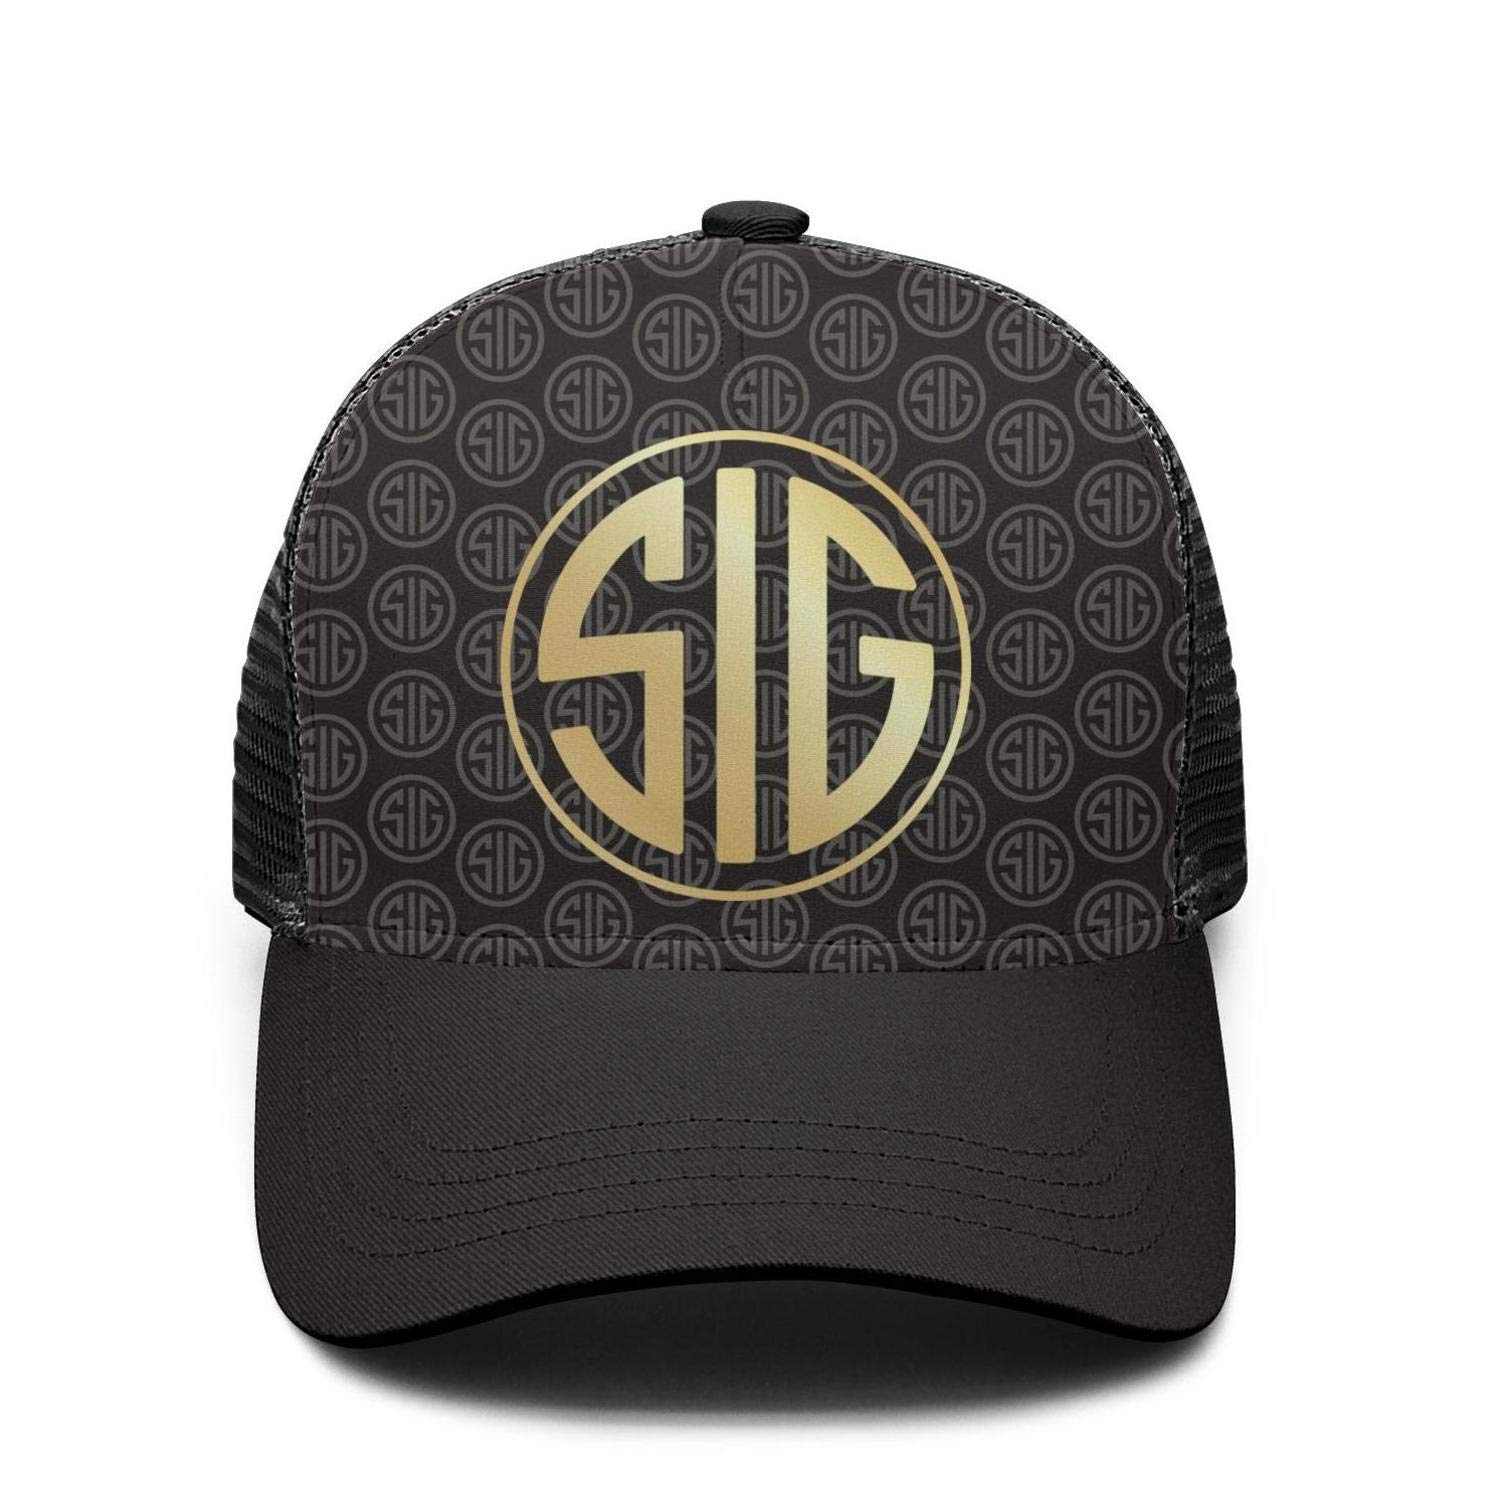 Heart Wolf SIG-Sauer-Flash-Gold-Stereoscopic-Dresses Hat for Mens Womens Dad Hat Adjustable Outdoor Snapback Hat Mersh Cap